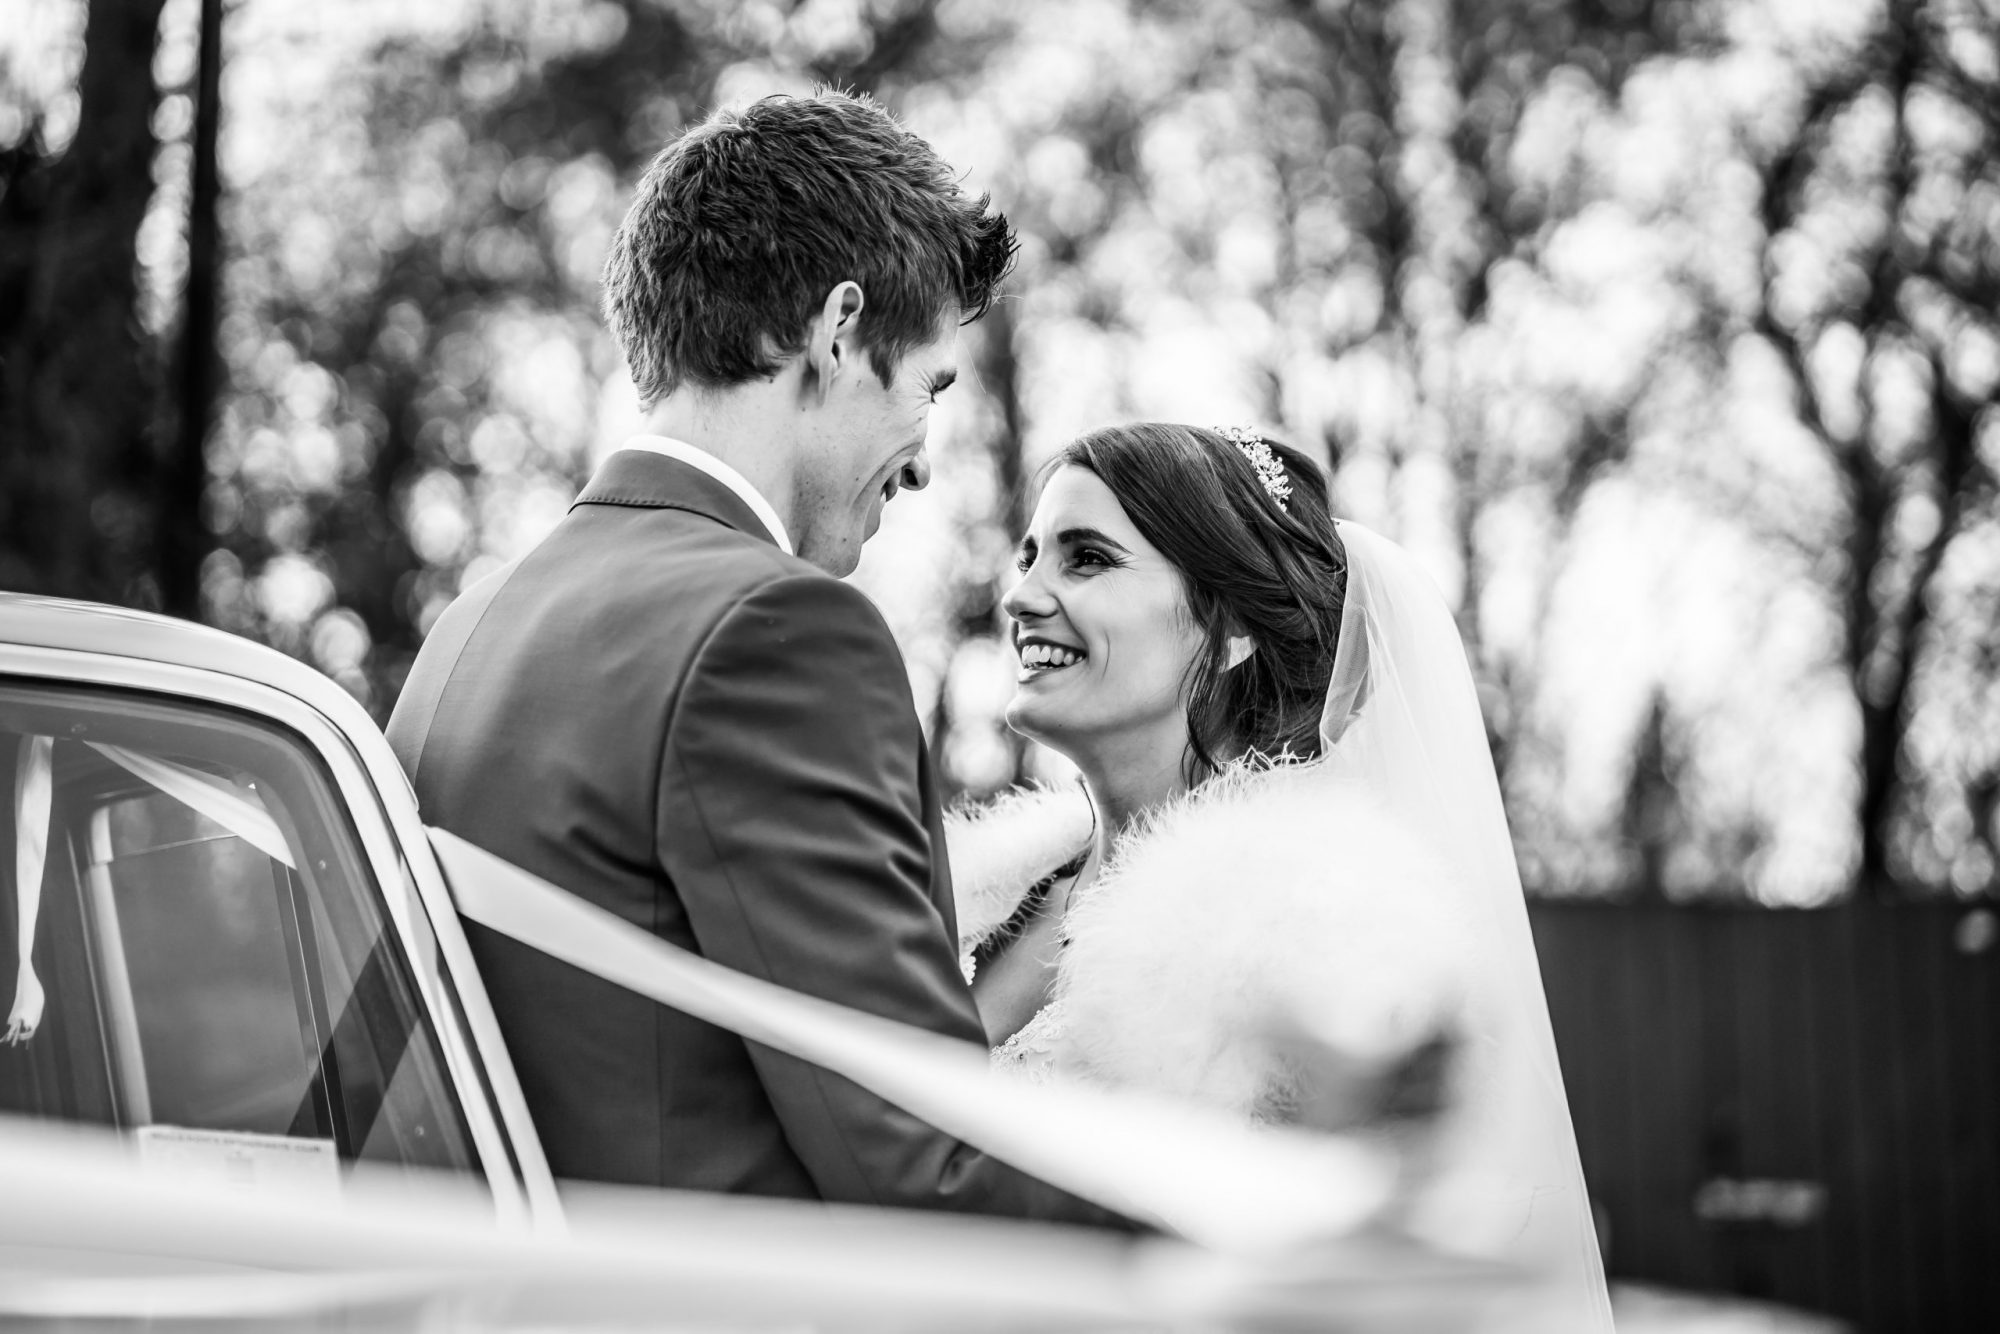 Bride and groom styled by Bridal Hair in Hampshire